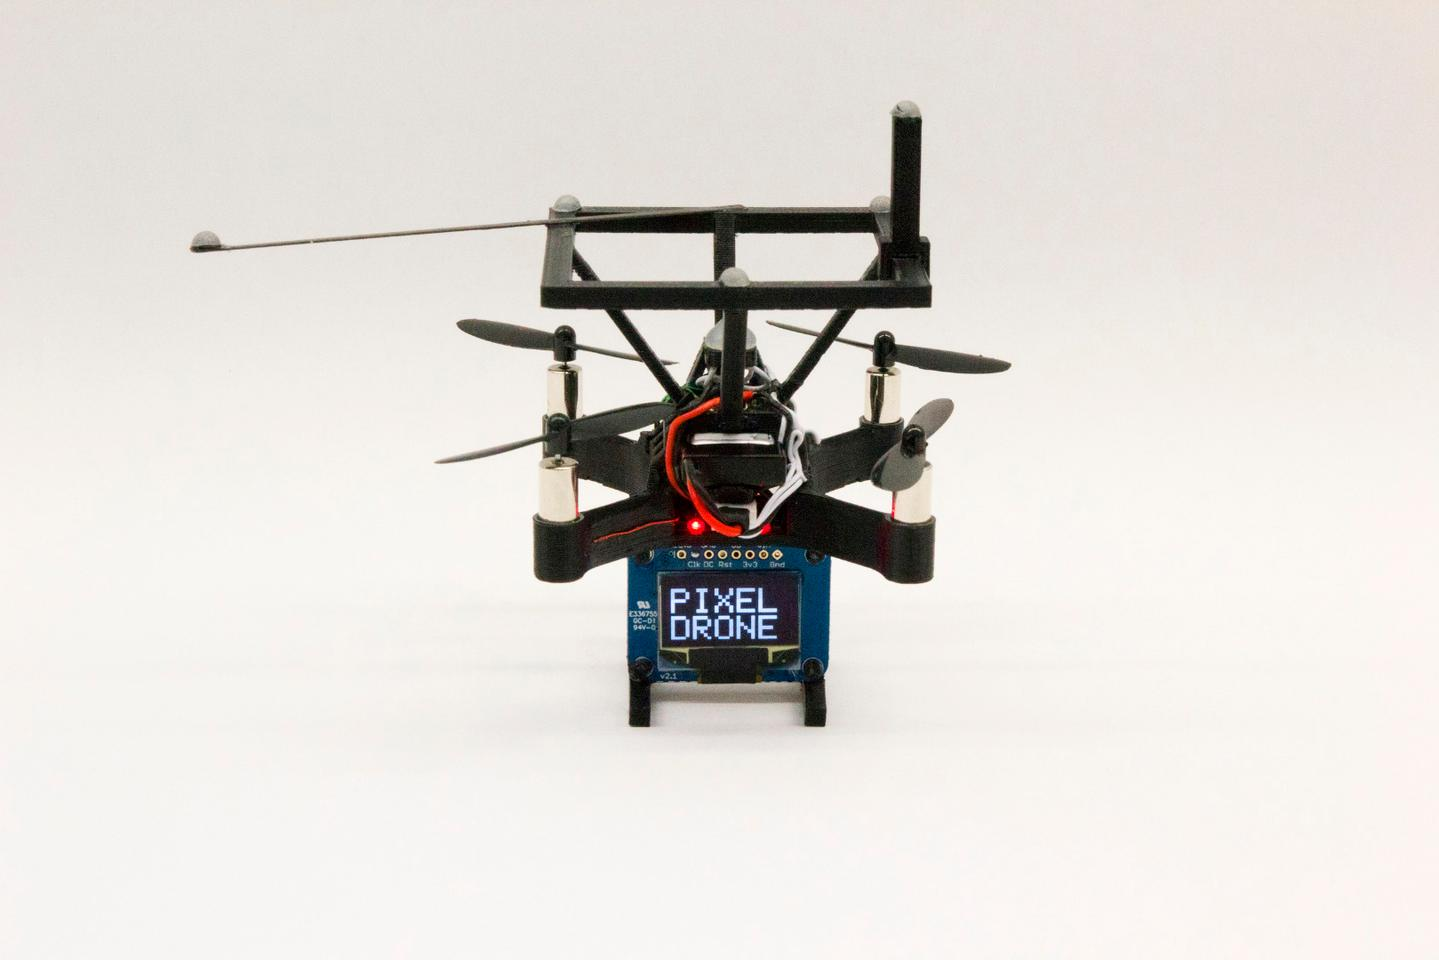 To enable tracking and positioning in real time, all of the BitDrones have reflective markers attached